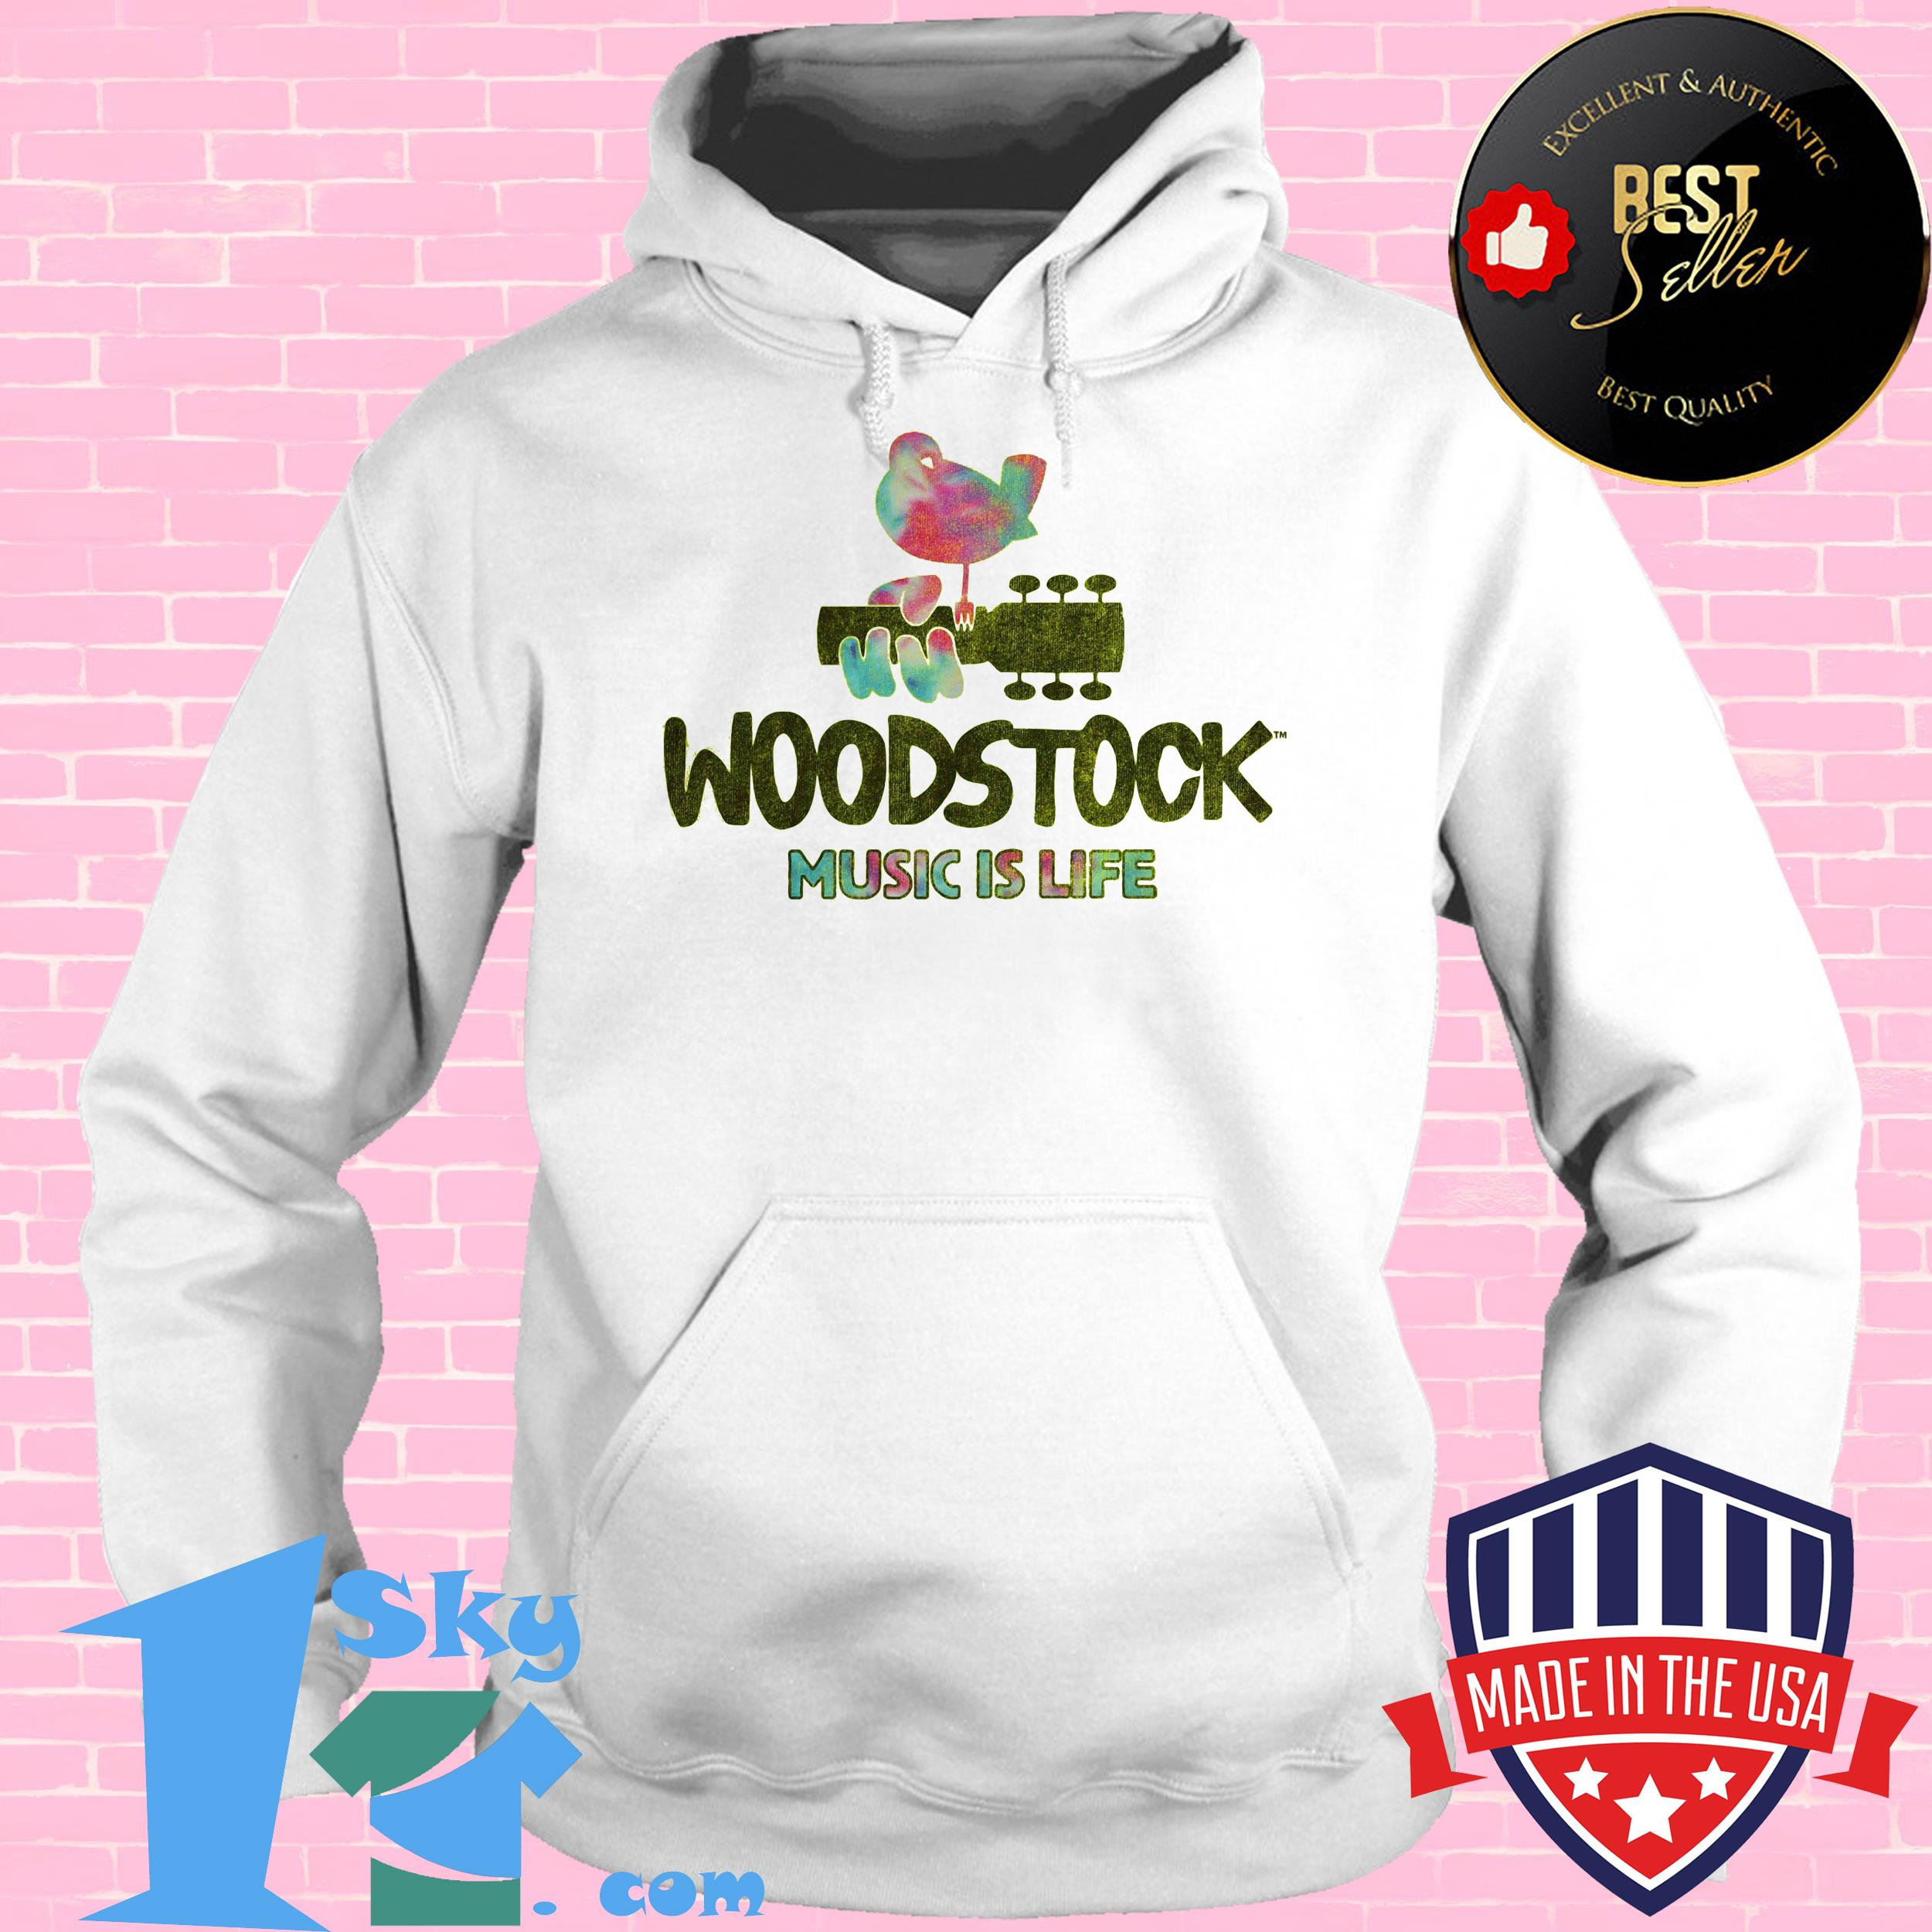 woodstock festival music is life bird hoodie - Woodstock Festival  Music is Life Bird Shirt